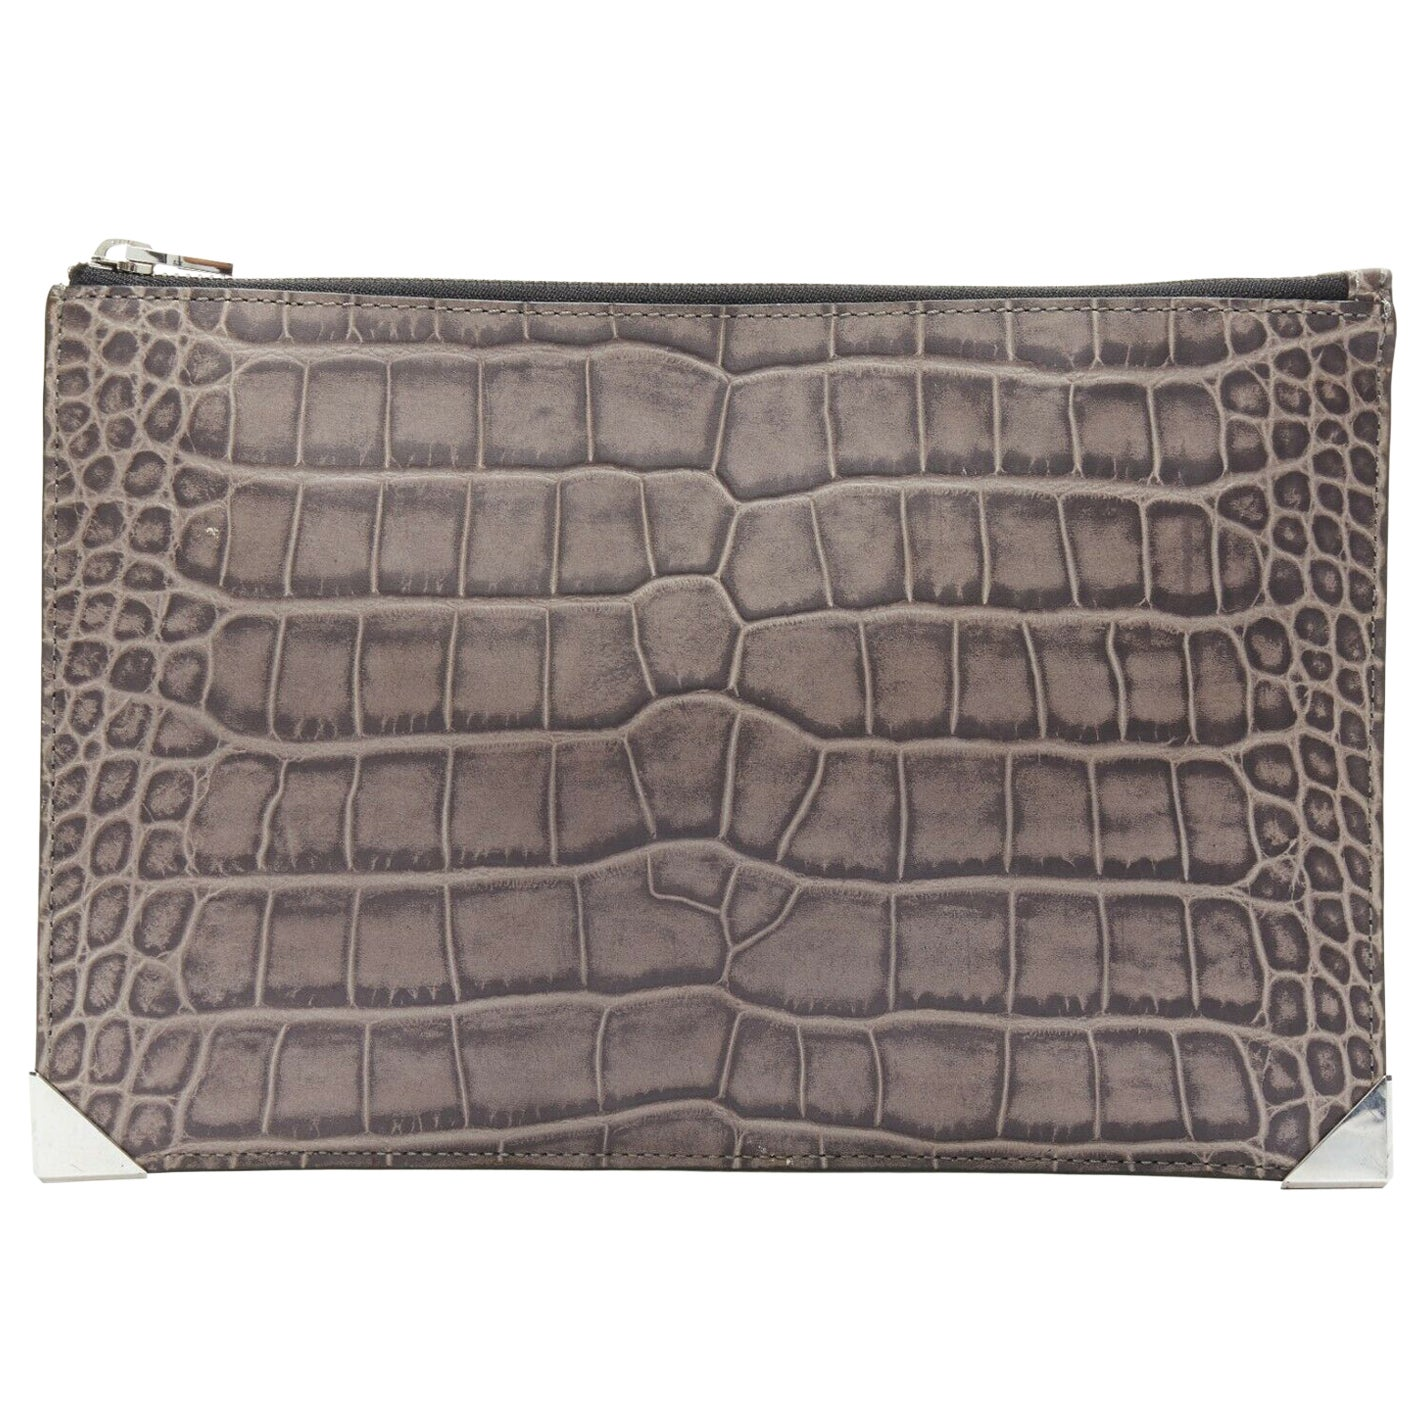 ALEXANDER WANG Prisma clutch leather alligator embossed silver hardware wallet